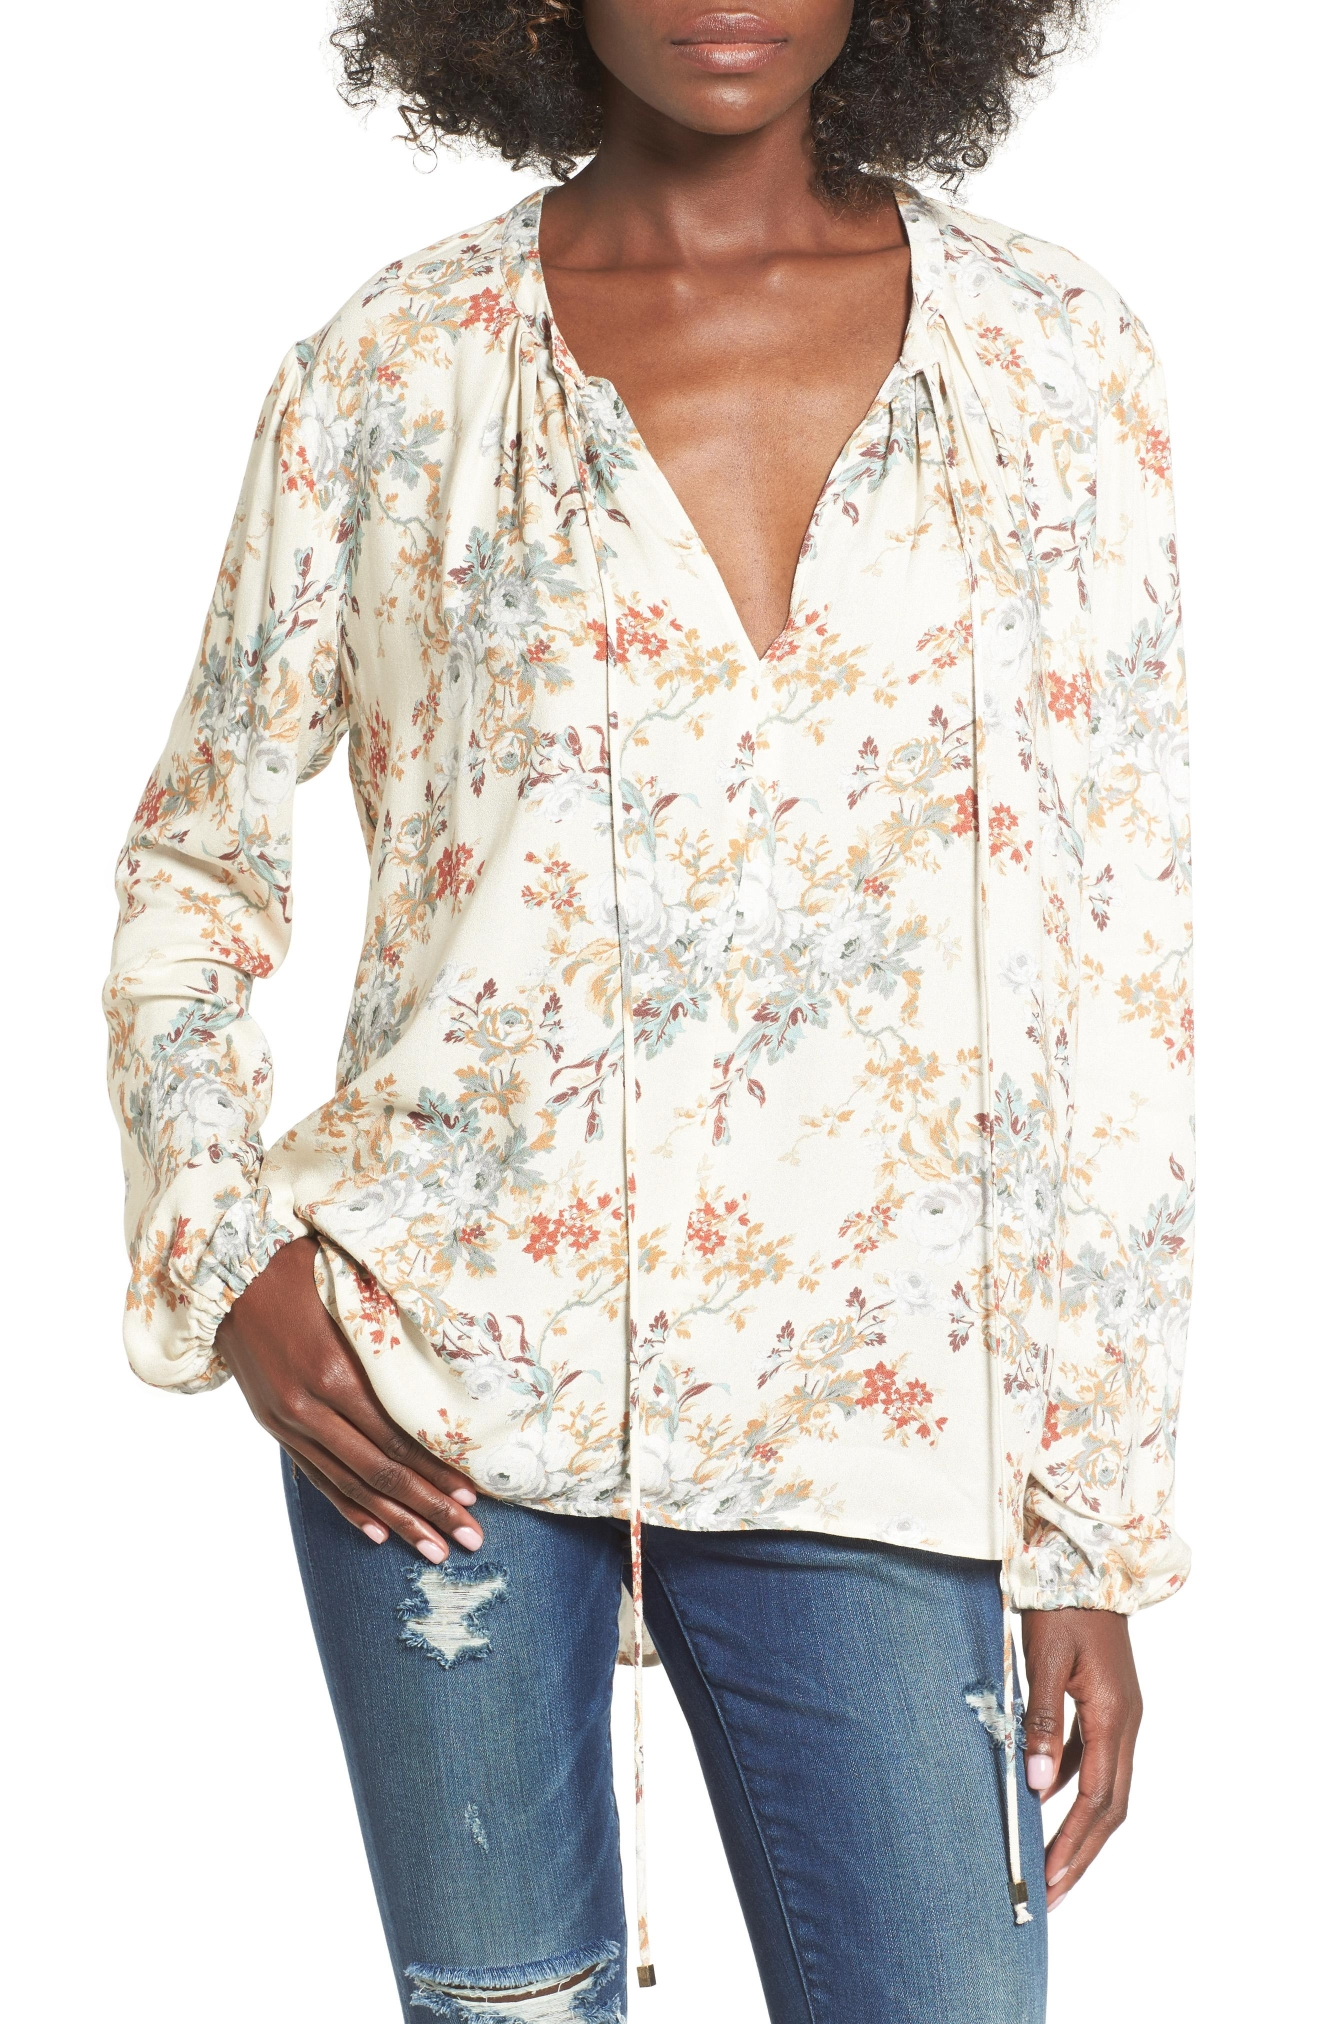 Wayf 'townsend' long sleeve peasant top (Nordstrom)